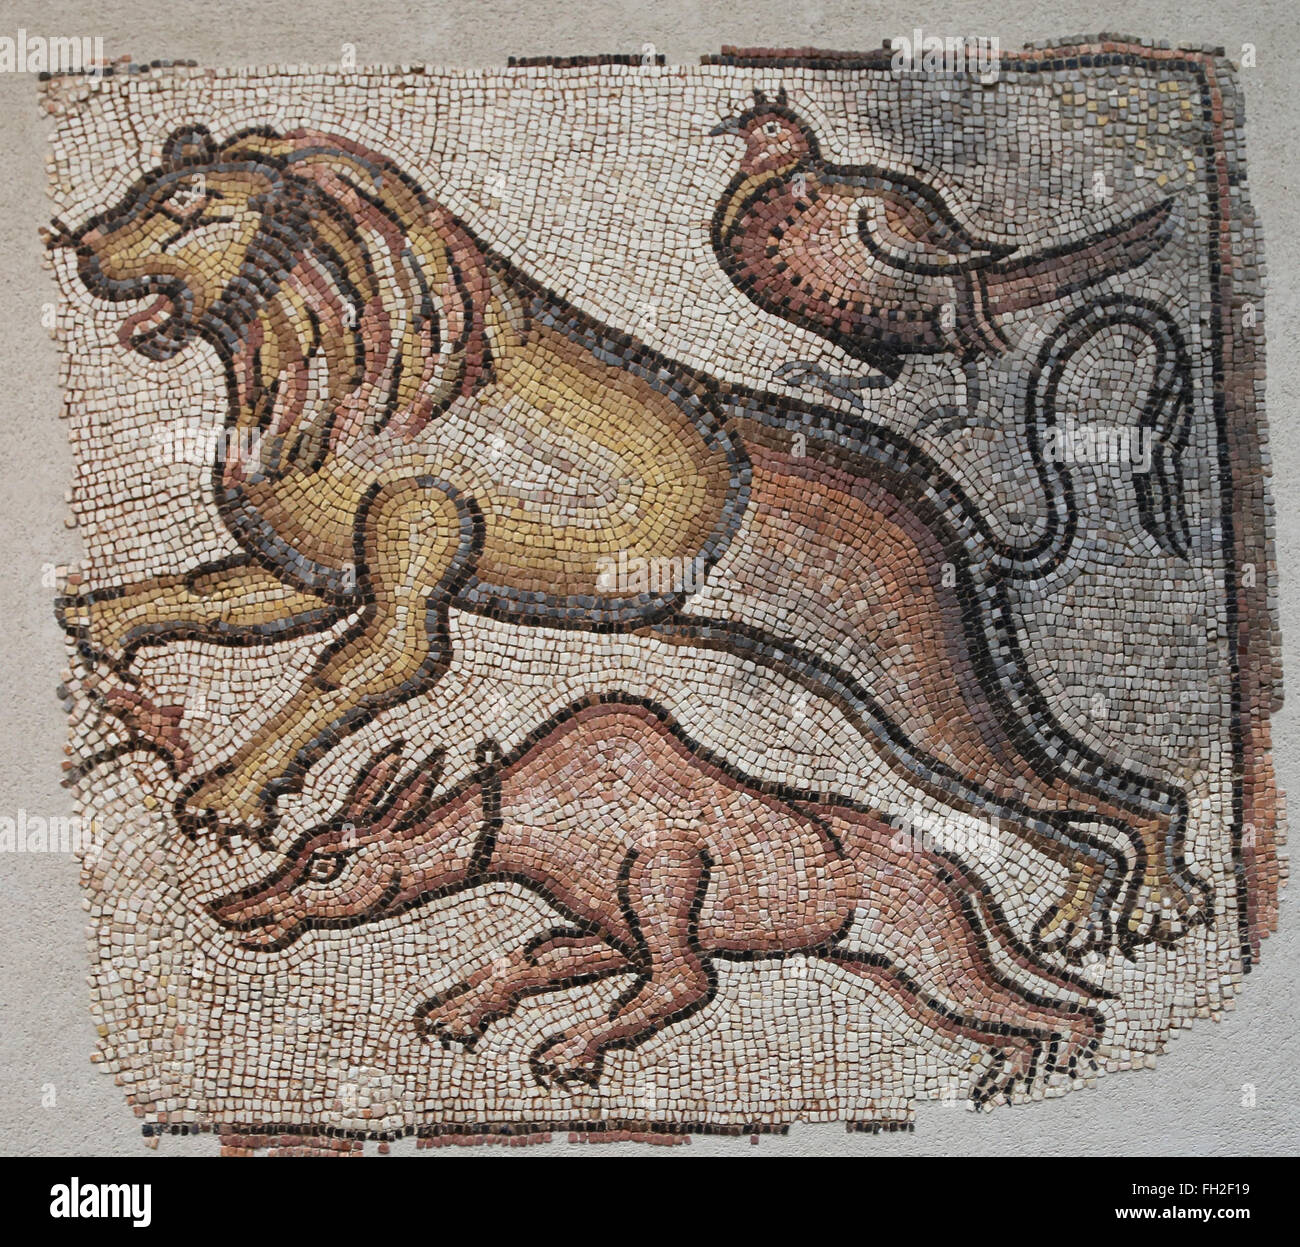 Image of: Ancient Eastern Mediterranean Roman Mosaics Of Animals 5th 6th Century Three Animals Are In The Race Dog Lion And Pheasant Alamy Eastern Mediterranean Roman Mosaics Of Animals 5th 6th Century